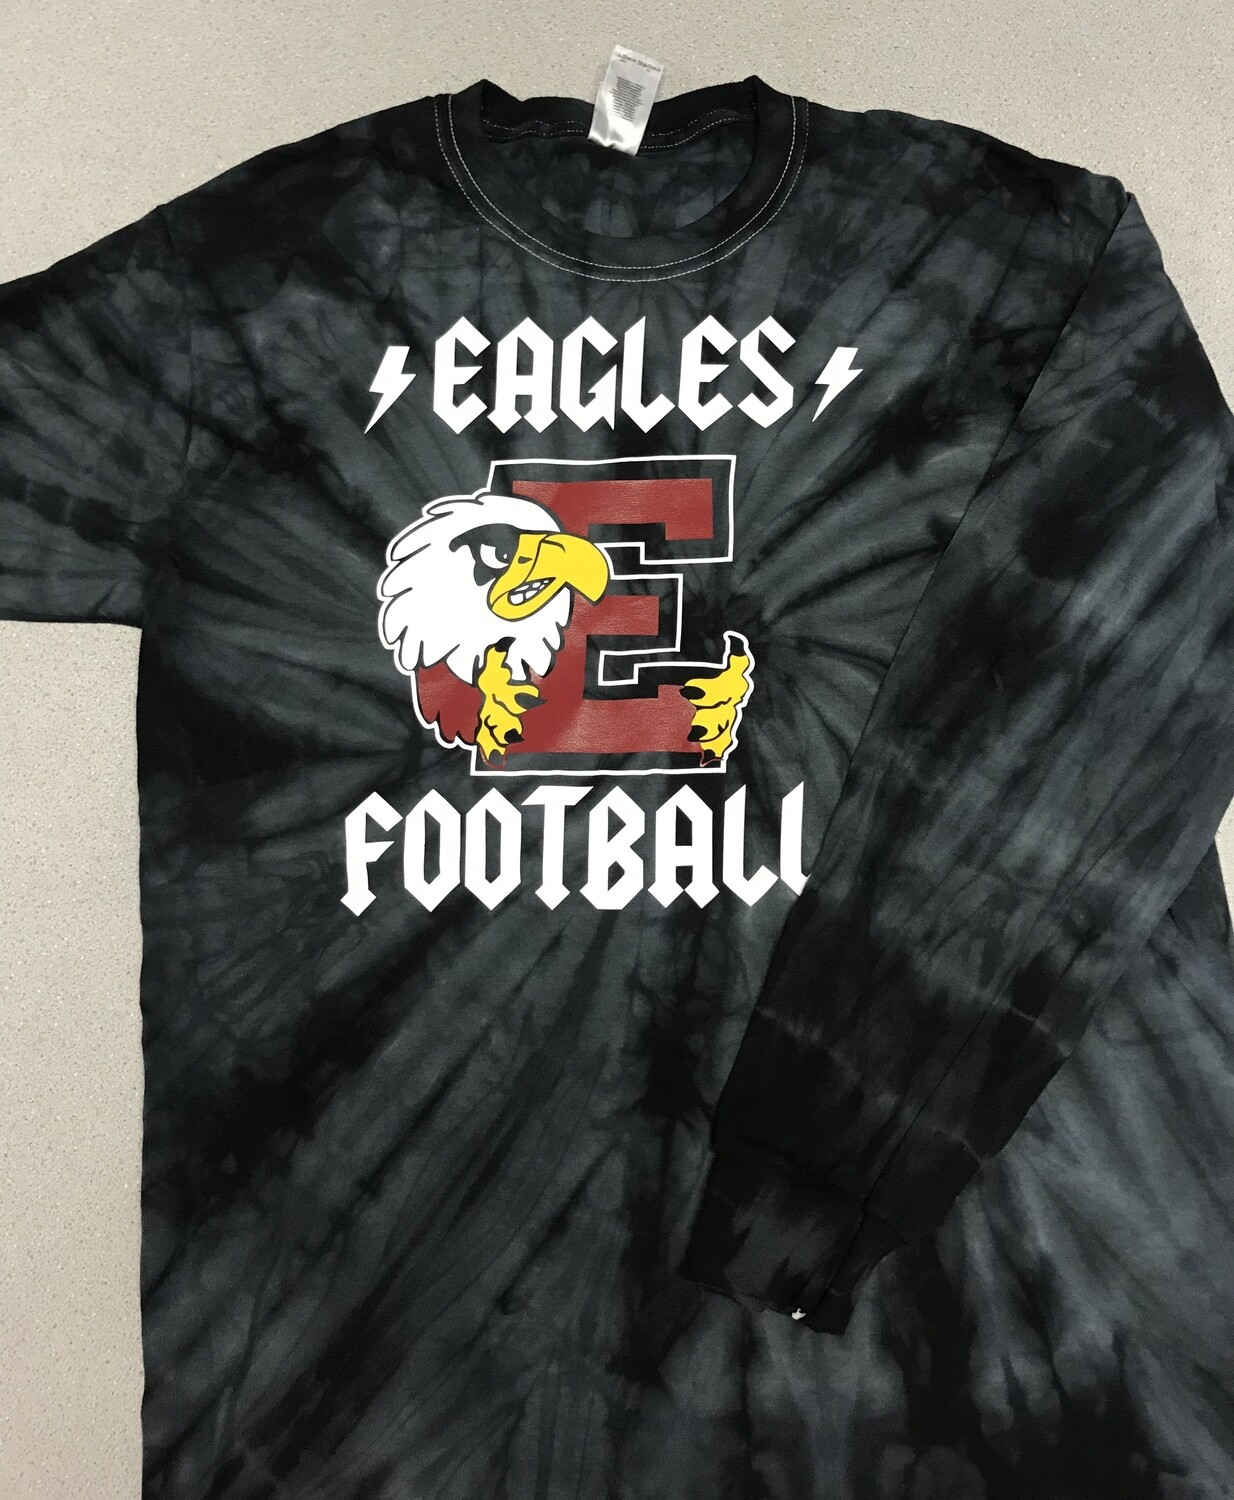 Eagles Football Back in Black long sleeve Tie Dye tee